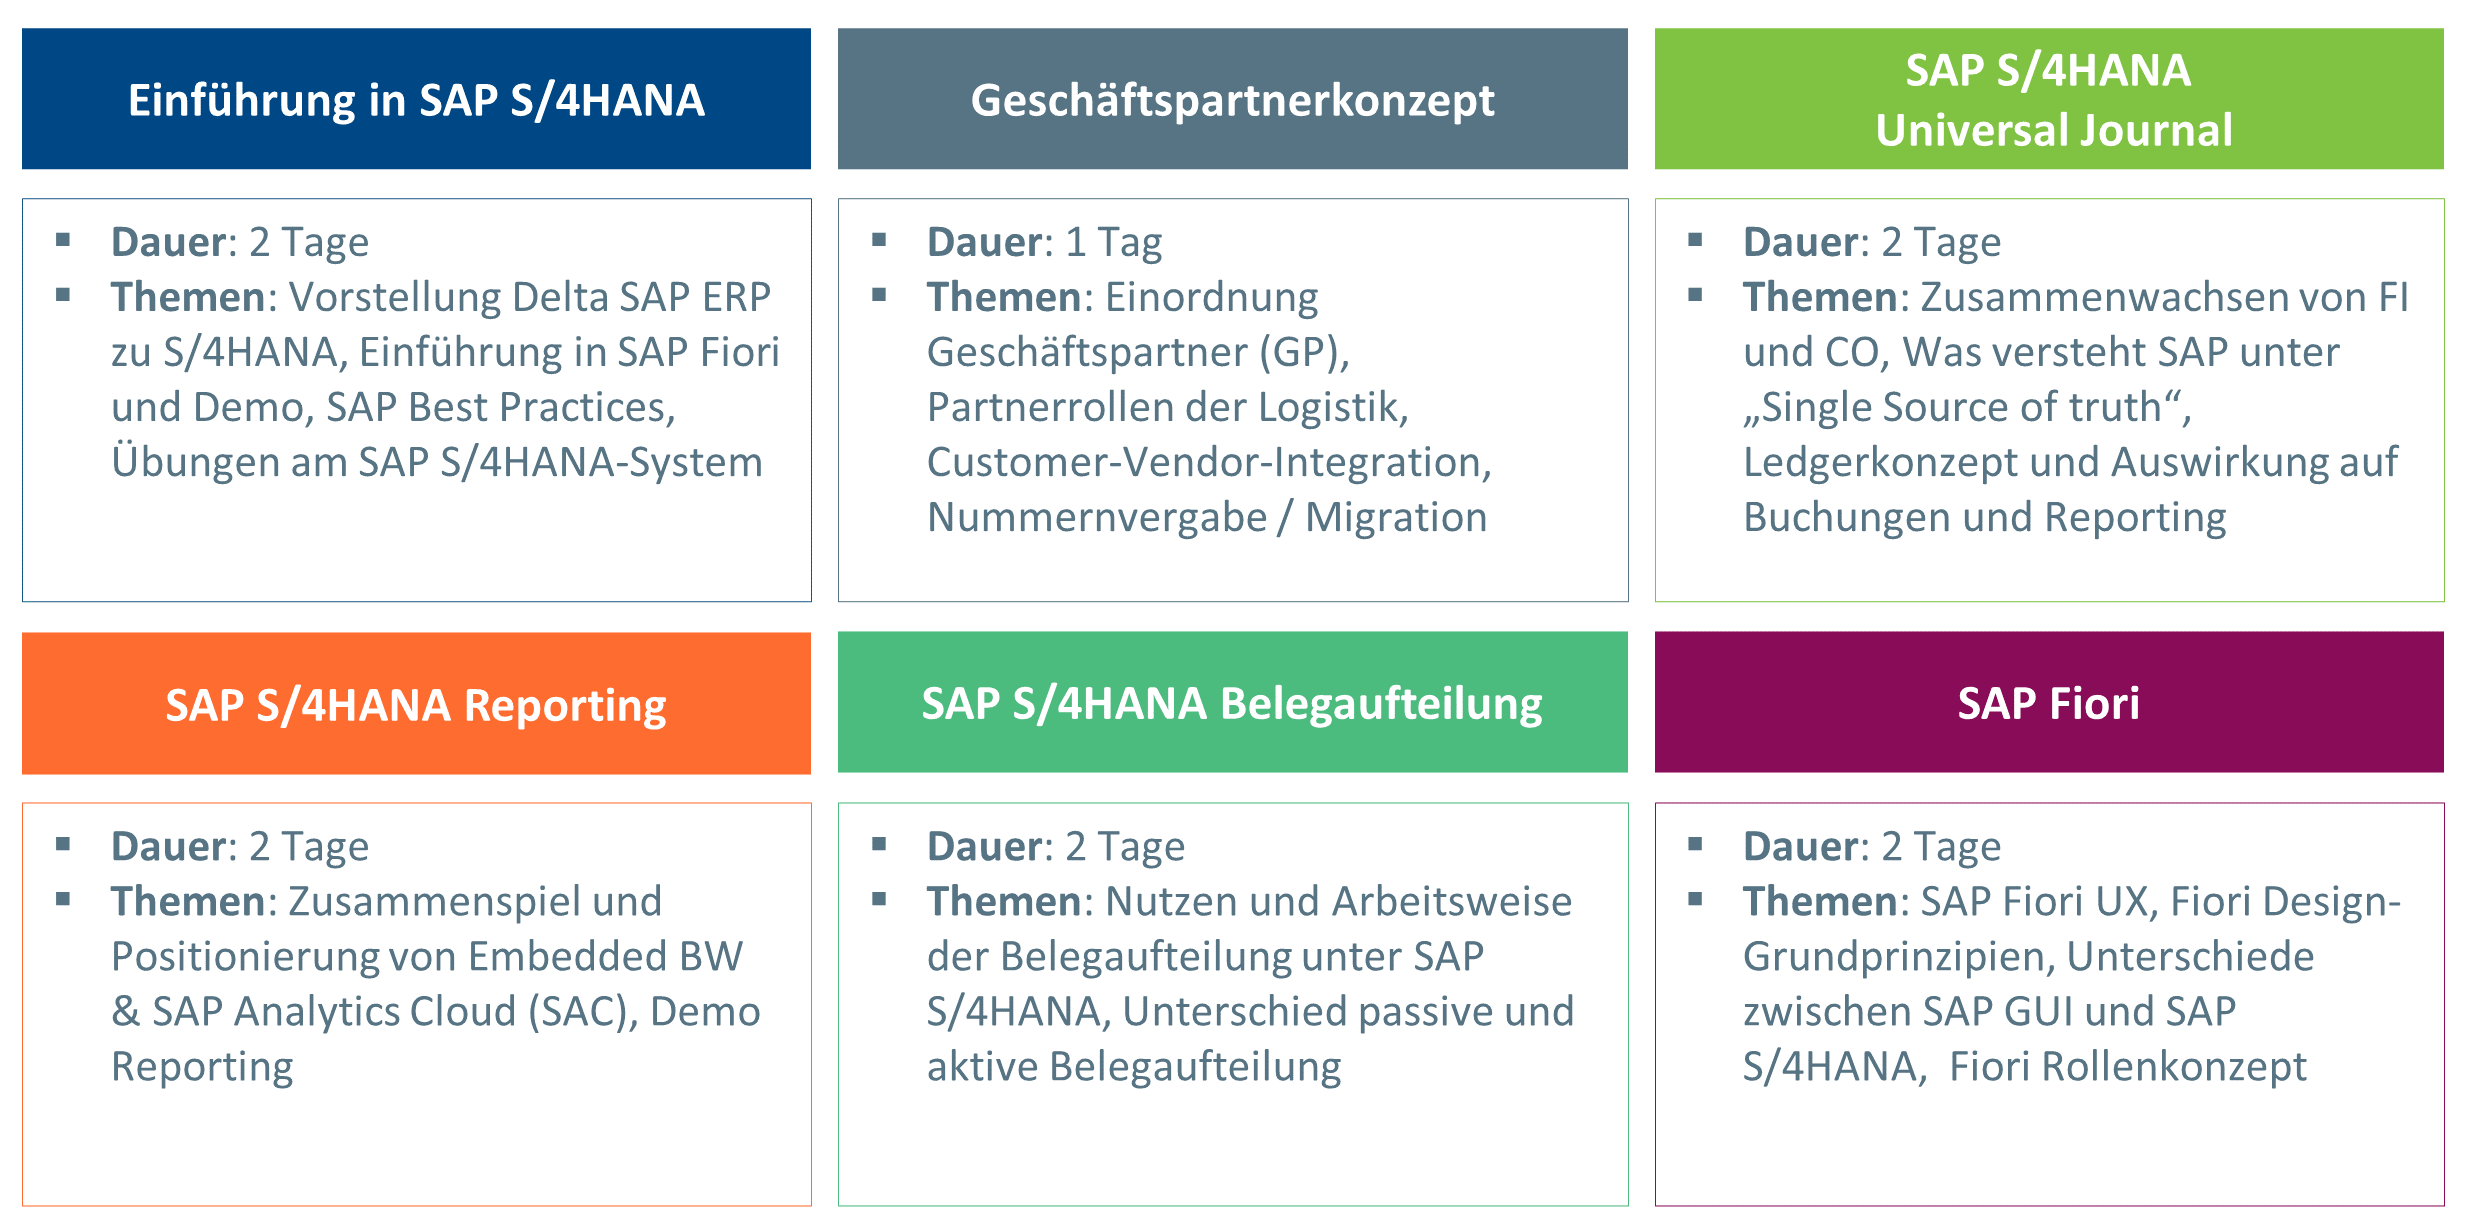 sap s/4hana migration was beachten